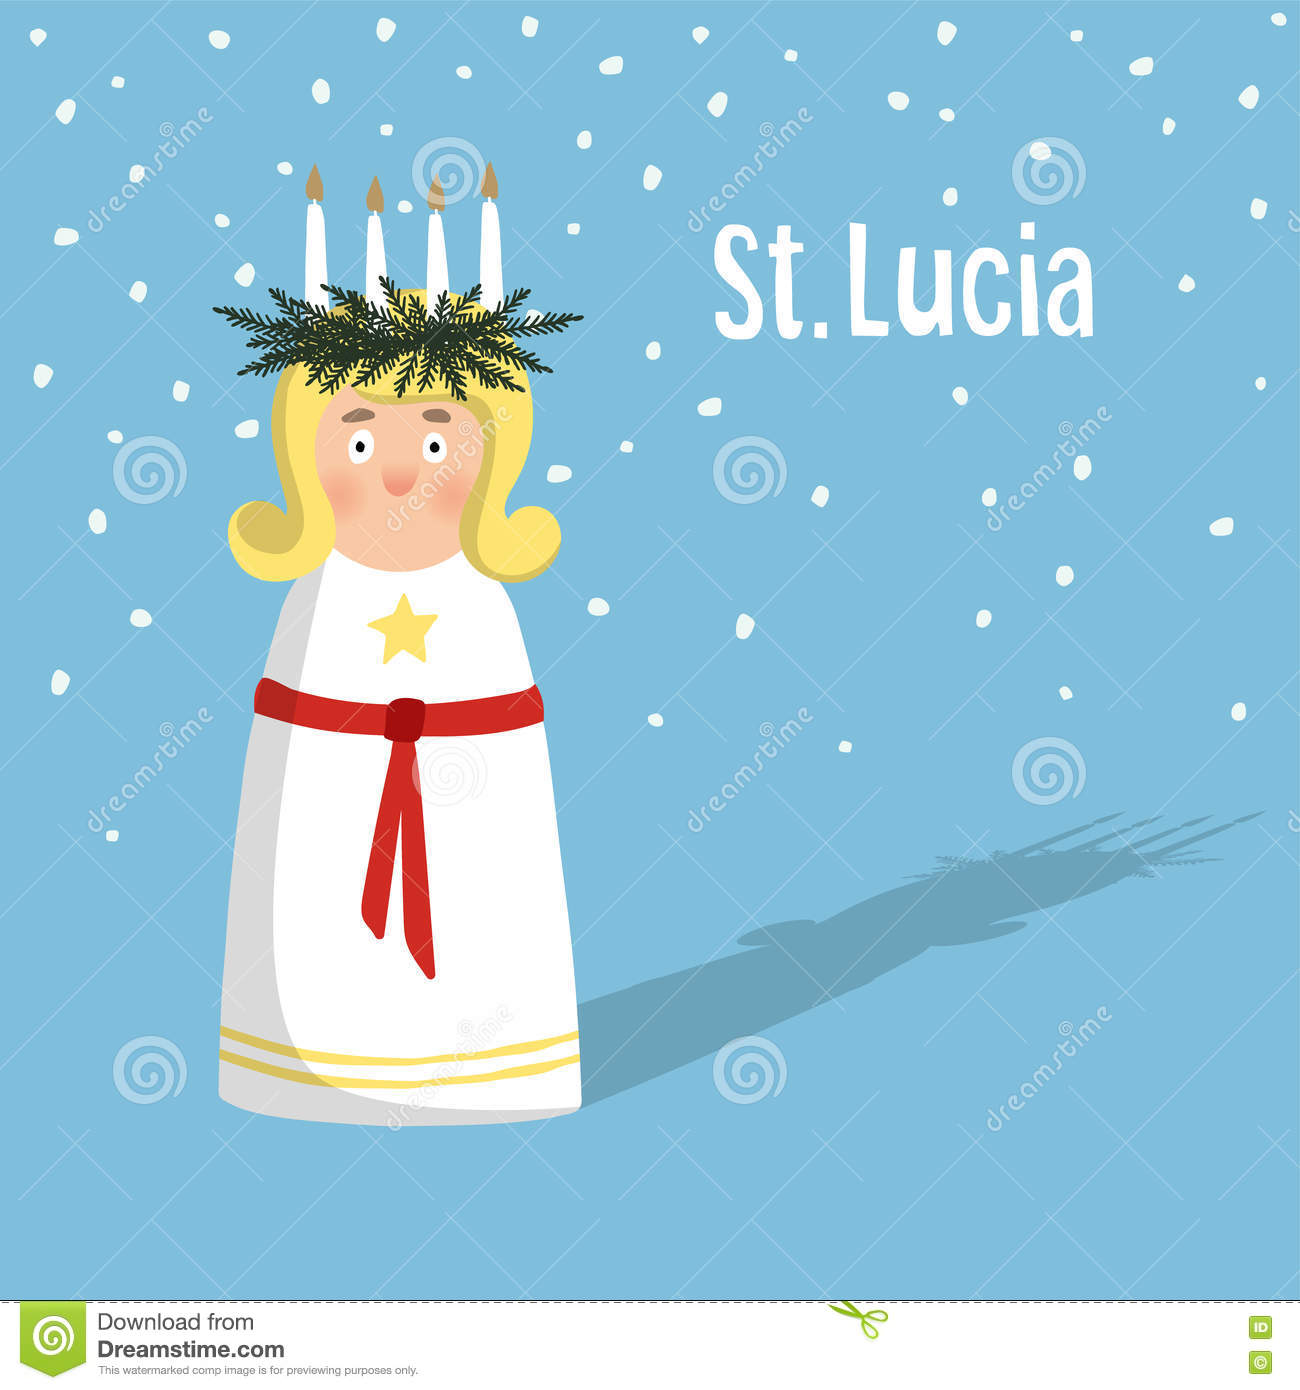 Little blonde girl with wreath and candle crown, Saint Lucia. Swedish Christmas tradition, illustration background.